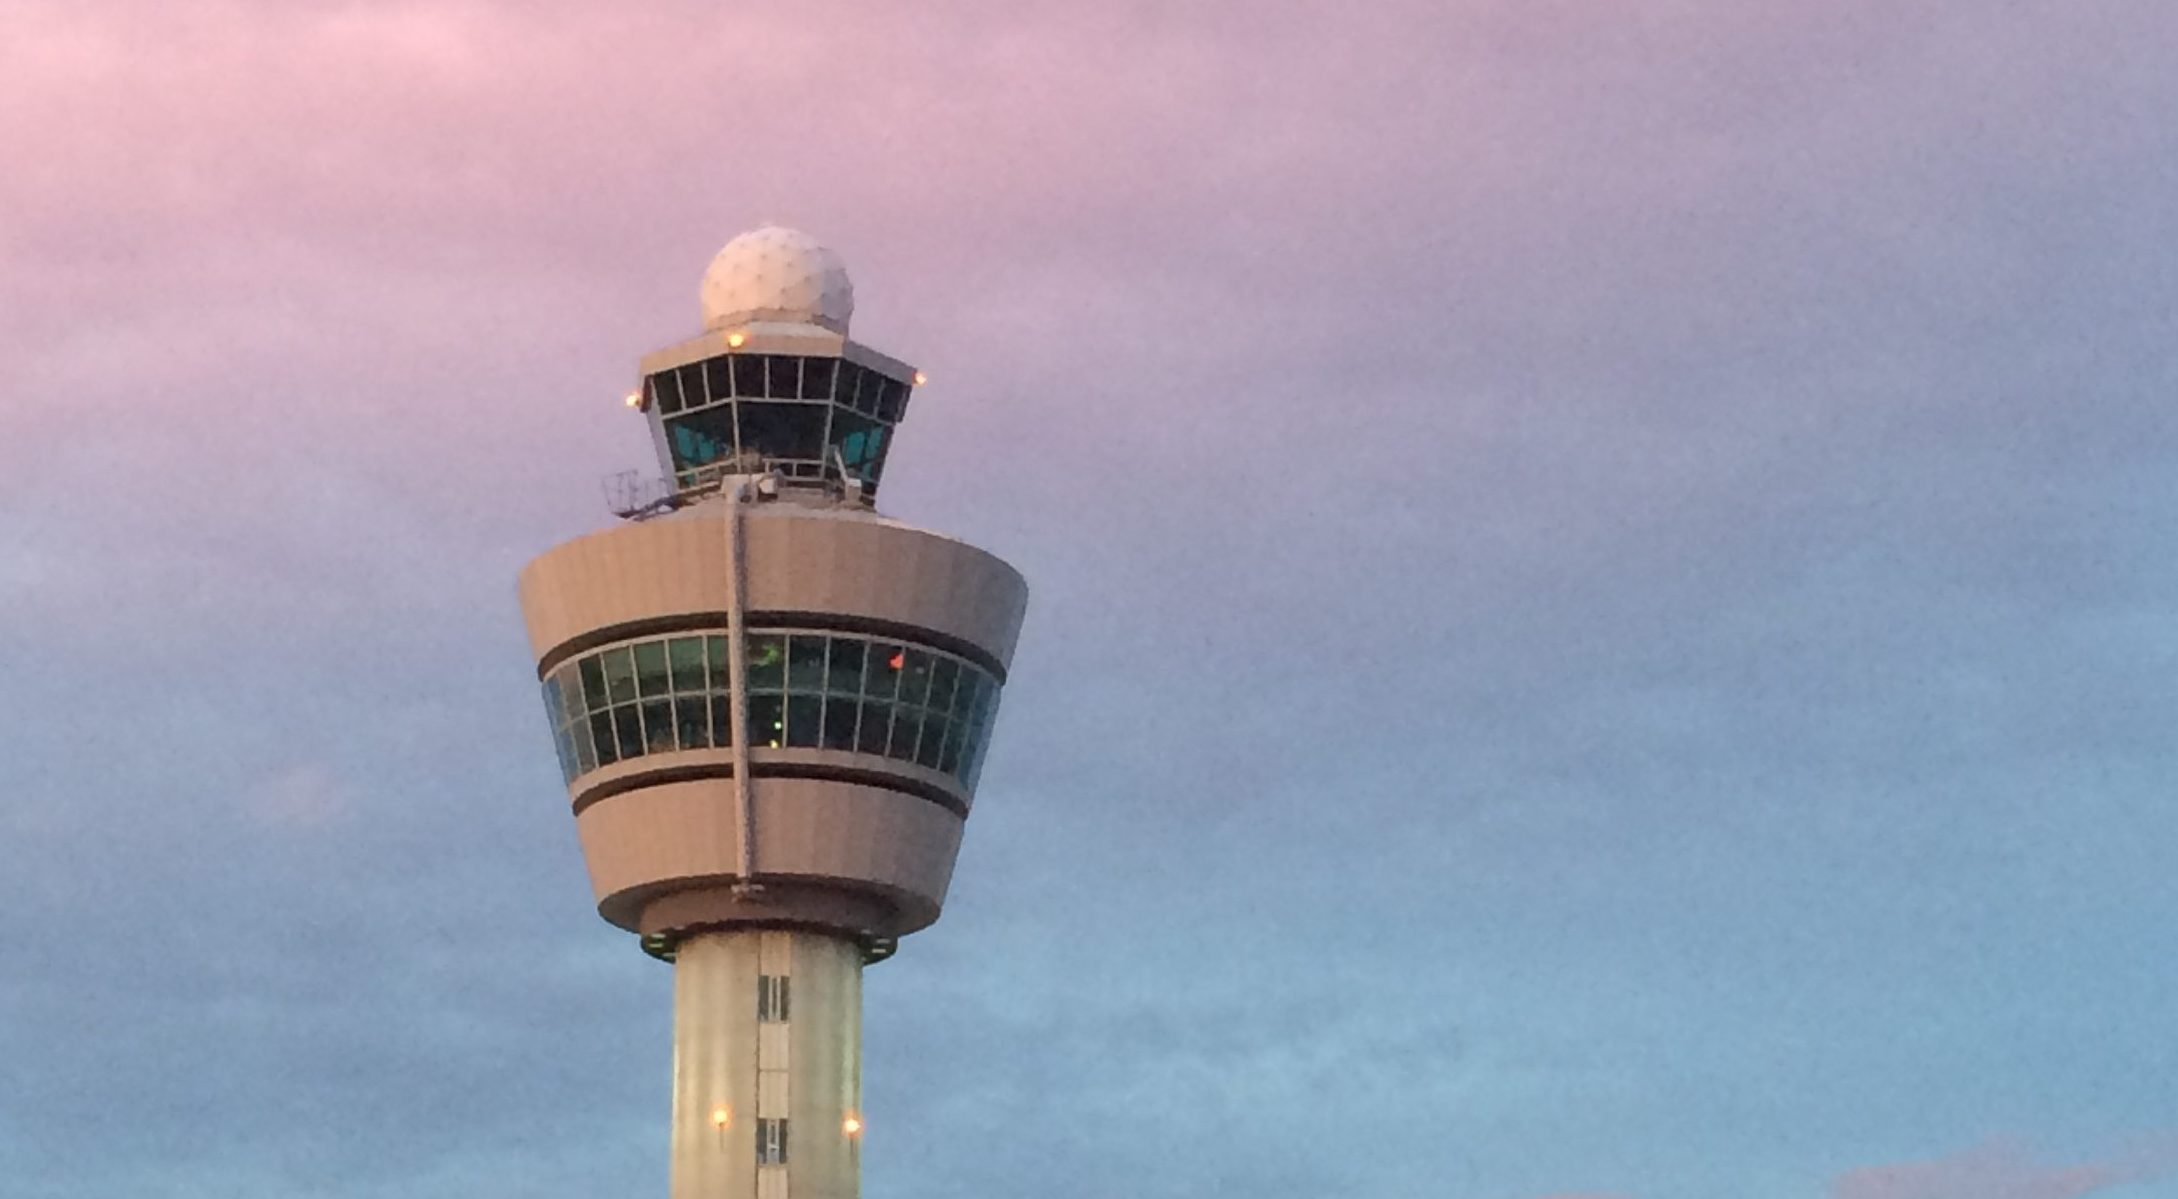 air traffic control tower in front of a pink and purple sky